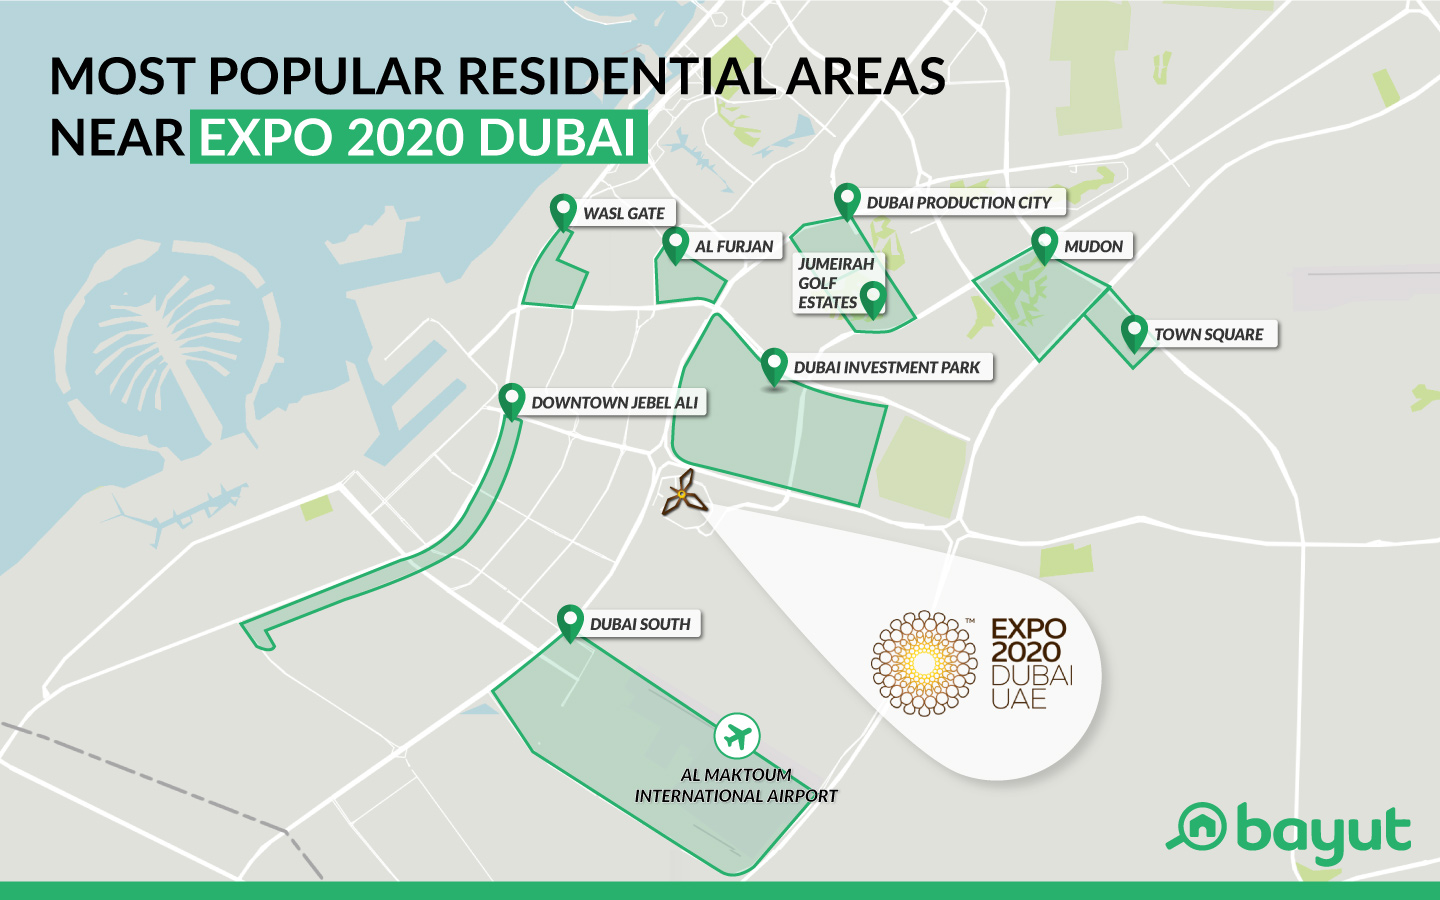 Map of top Dubai residential areas near the Expo 2020 site